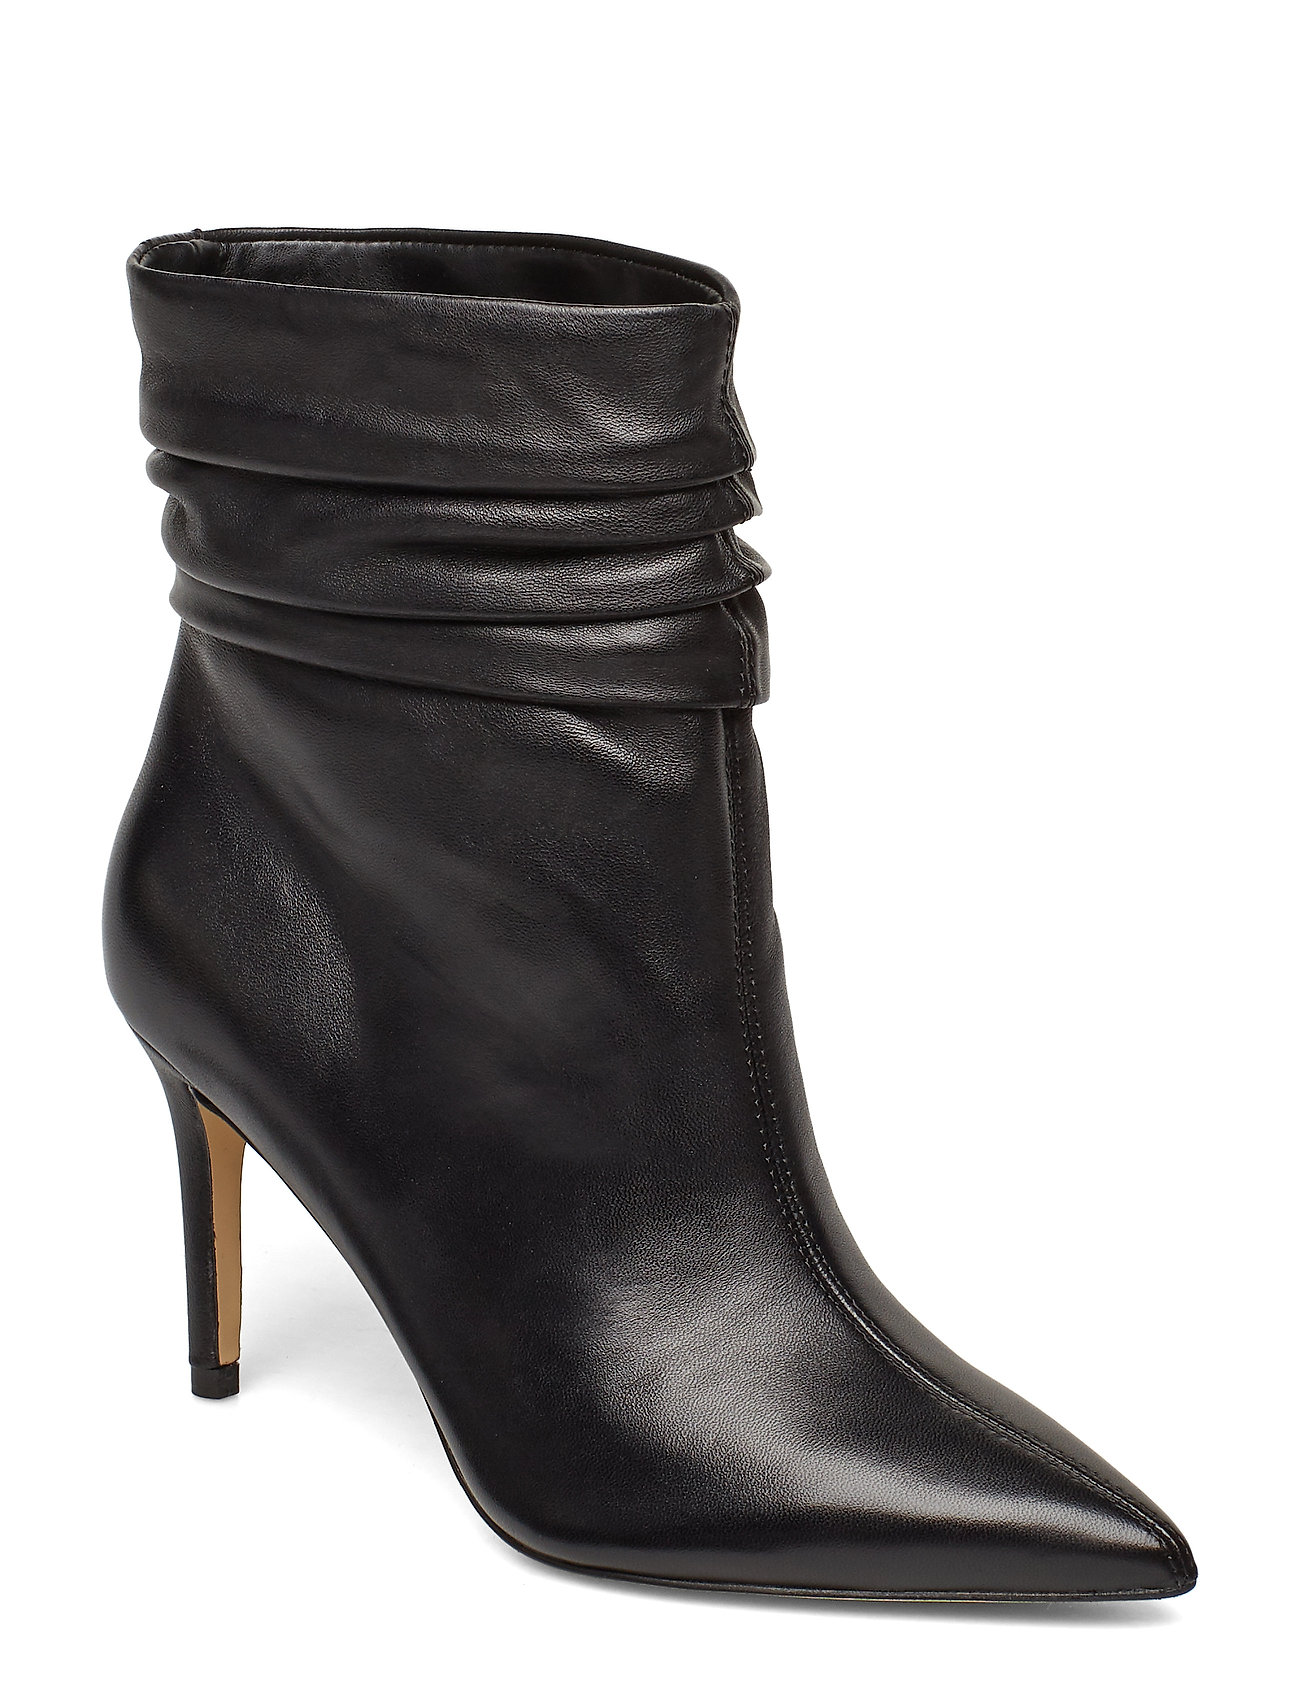 GUESS Bewell/Stivaletto /Lea Shoes Boots Ankle Boots Ankle Boots With Heel Schwarz GUESS